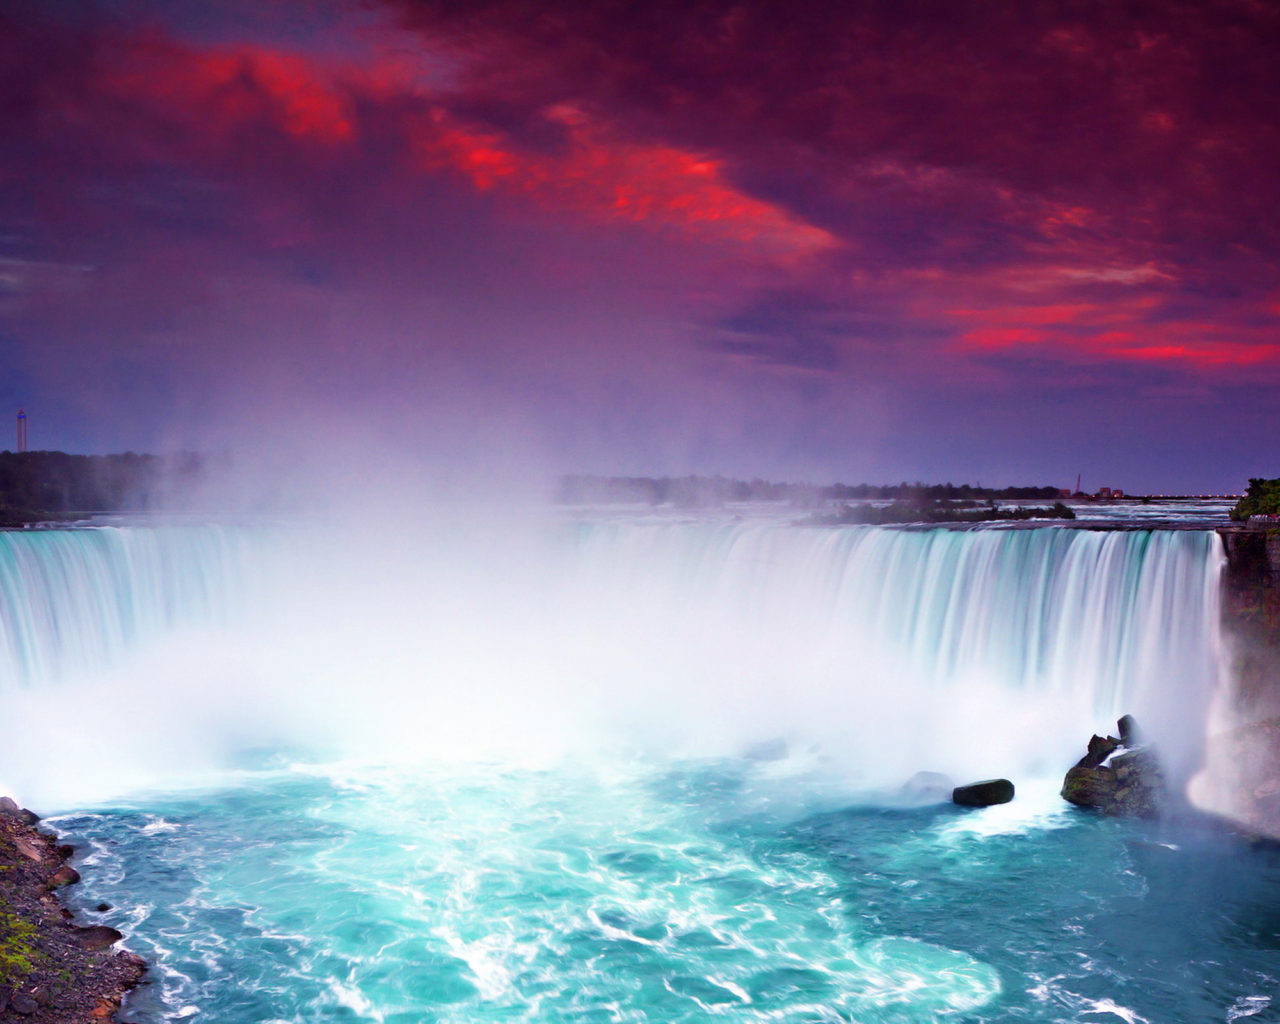 Beautiful Niagara Falls Wallpaper Niagara Falls At Night Lights Hd Wallpaper For Desktop